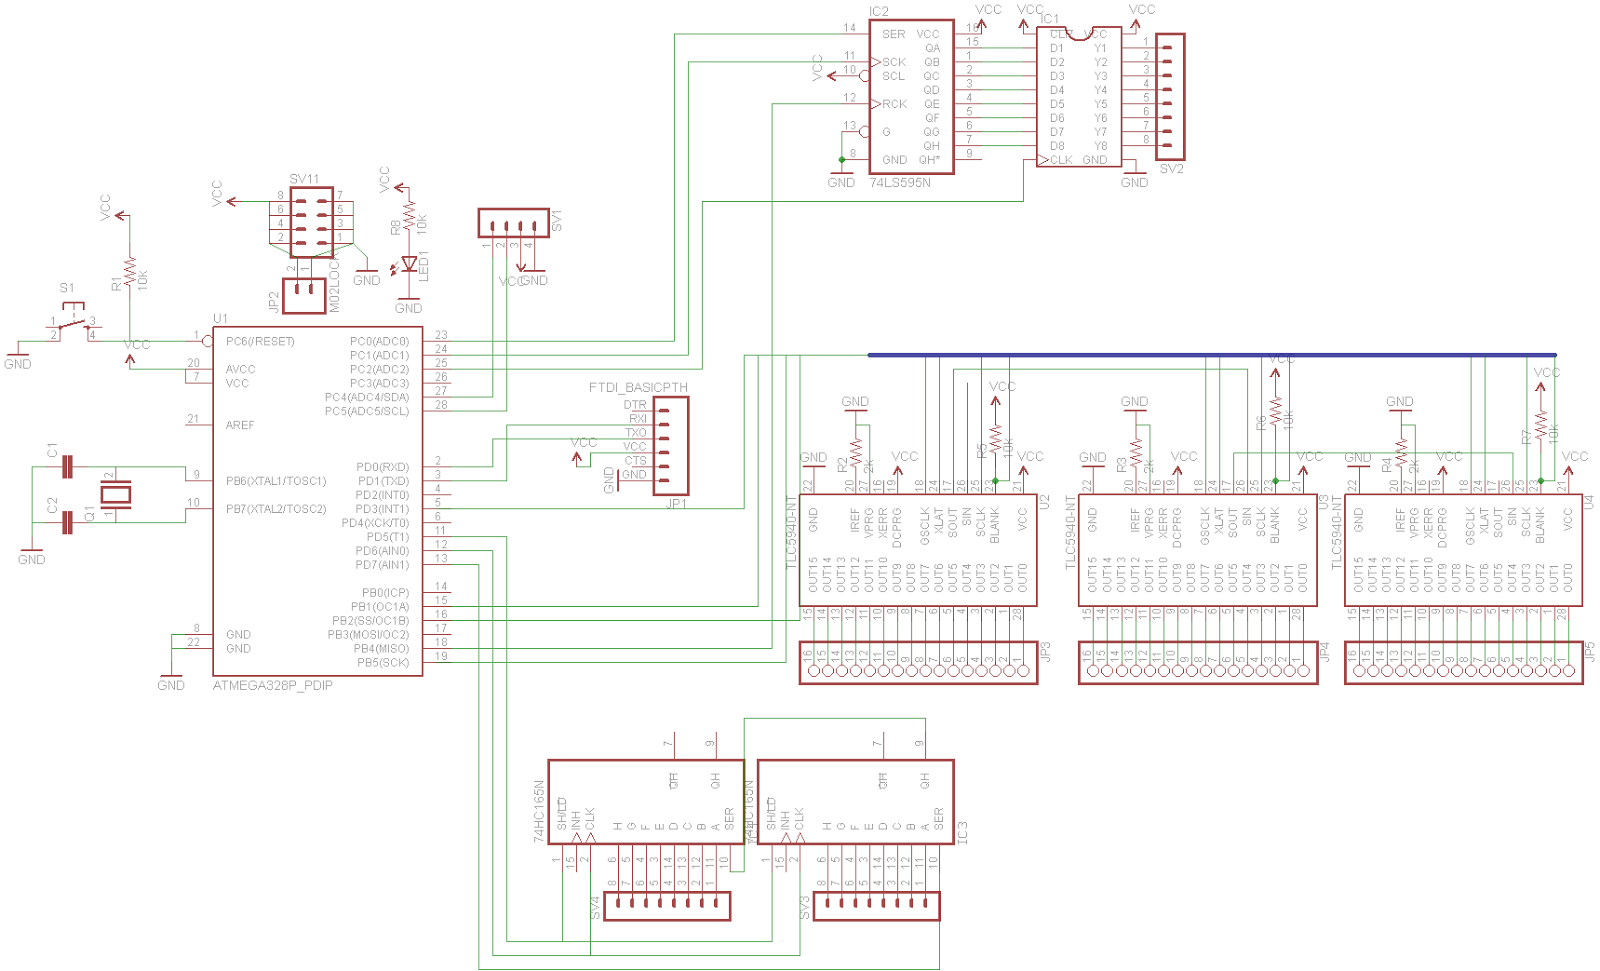 Schematic To Arduino Tlc5940 likewise Digital Volume Control Circuit Schematic besides Automatic Light Dimmer likewise What Resistor Do You Need For An Led moreover Motors. on led current control and the arduino tutorial